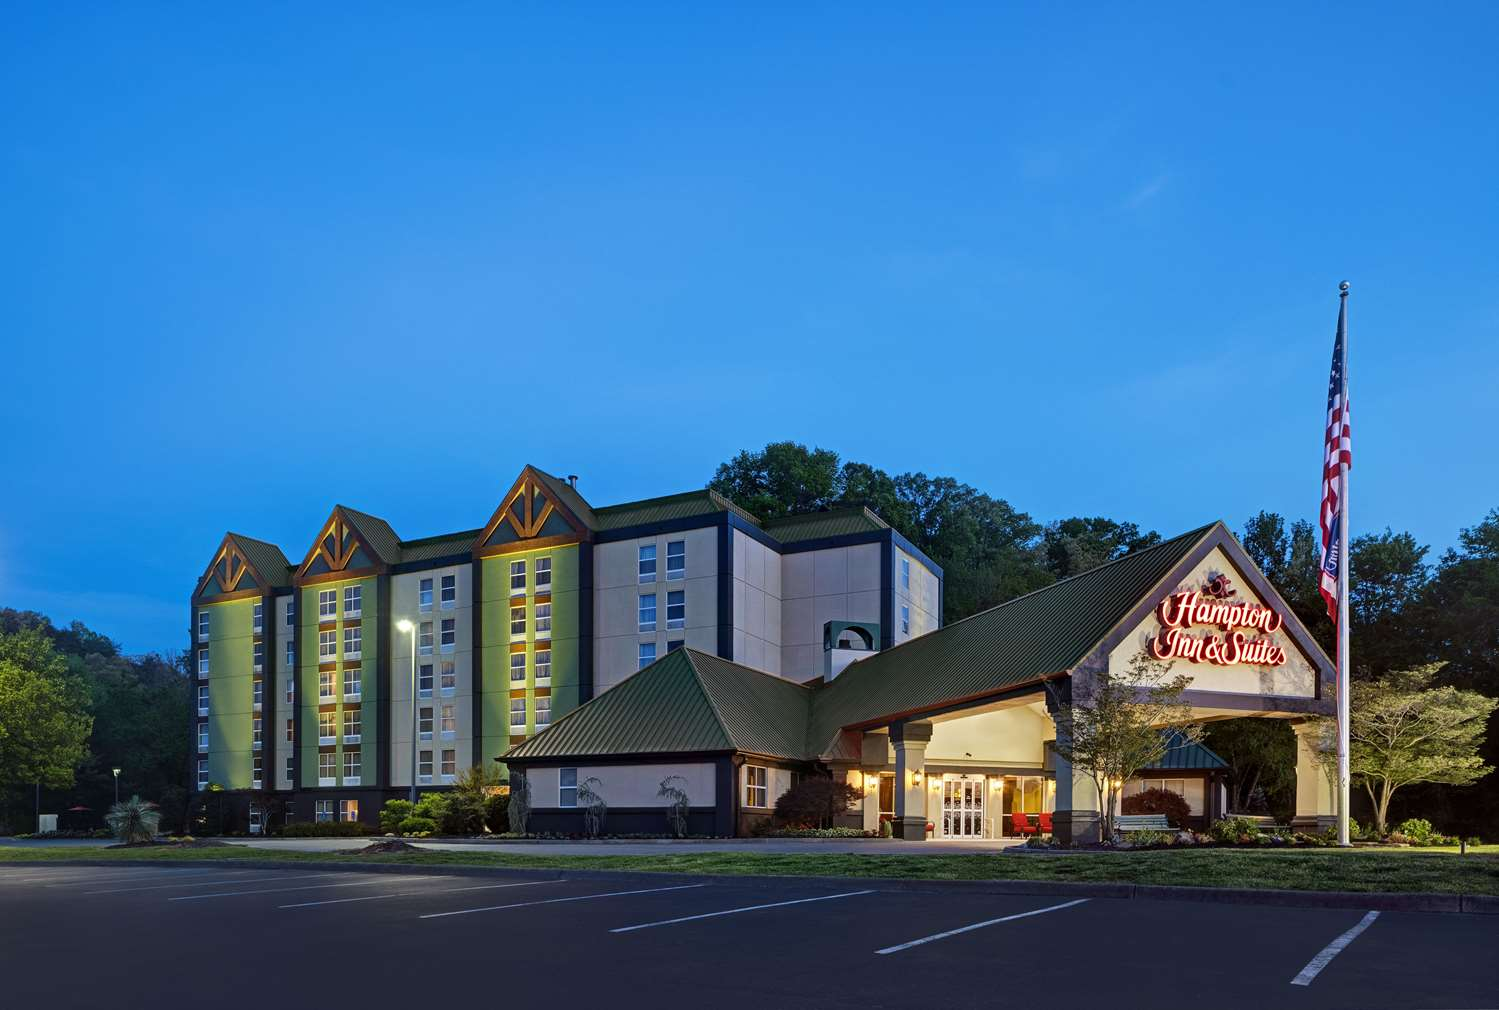 Hampton Inn & Suites on the Parkway Pigeon Forge